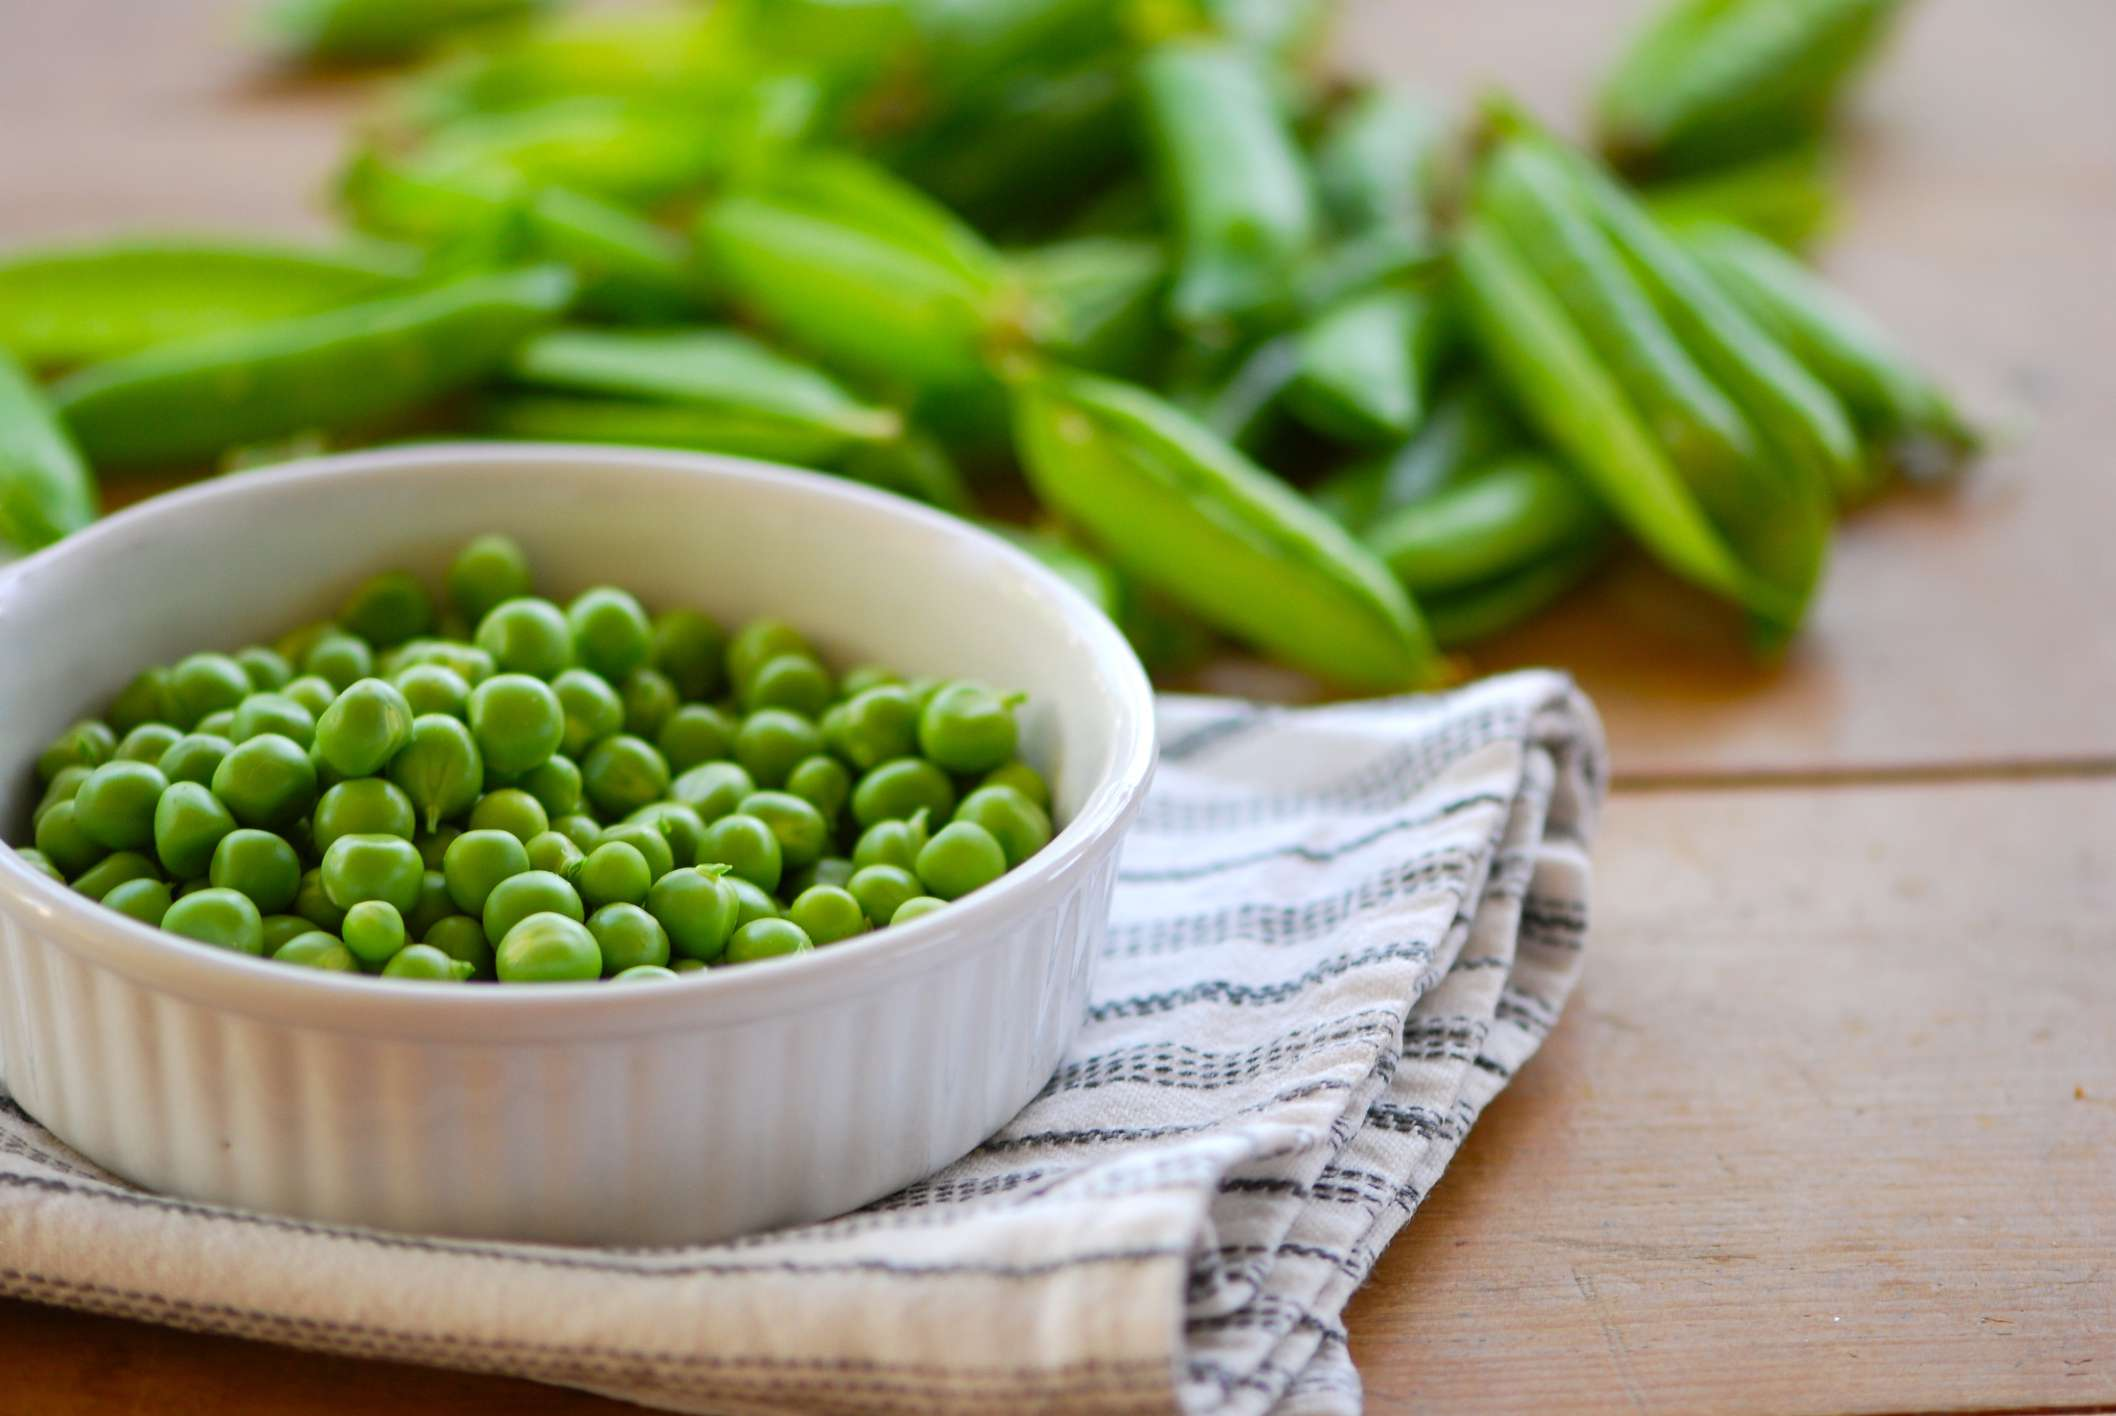 Bowl of shelled peas next to peas in shell.